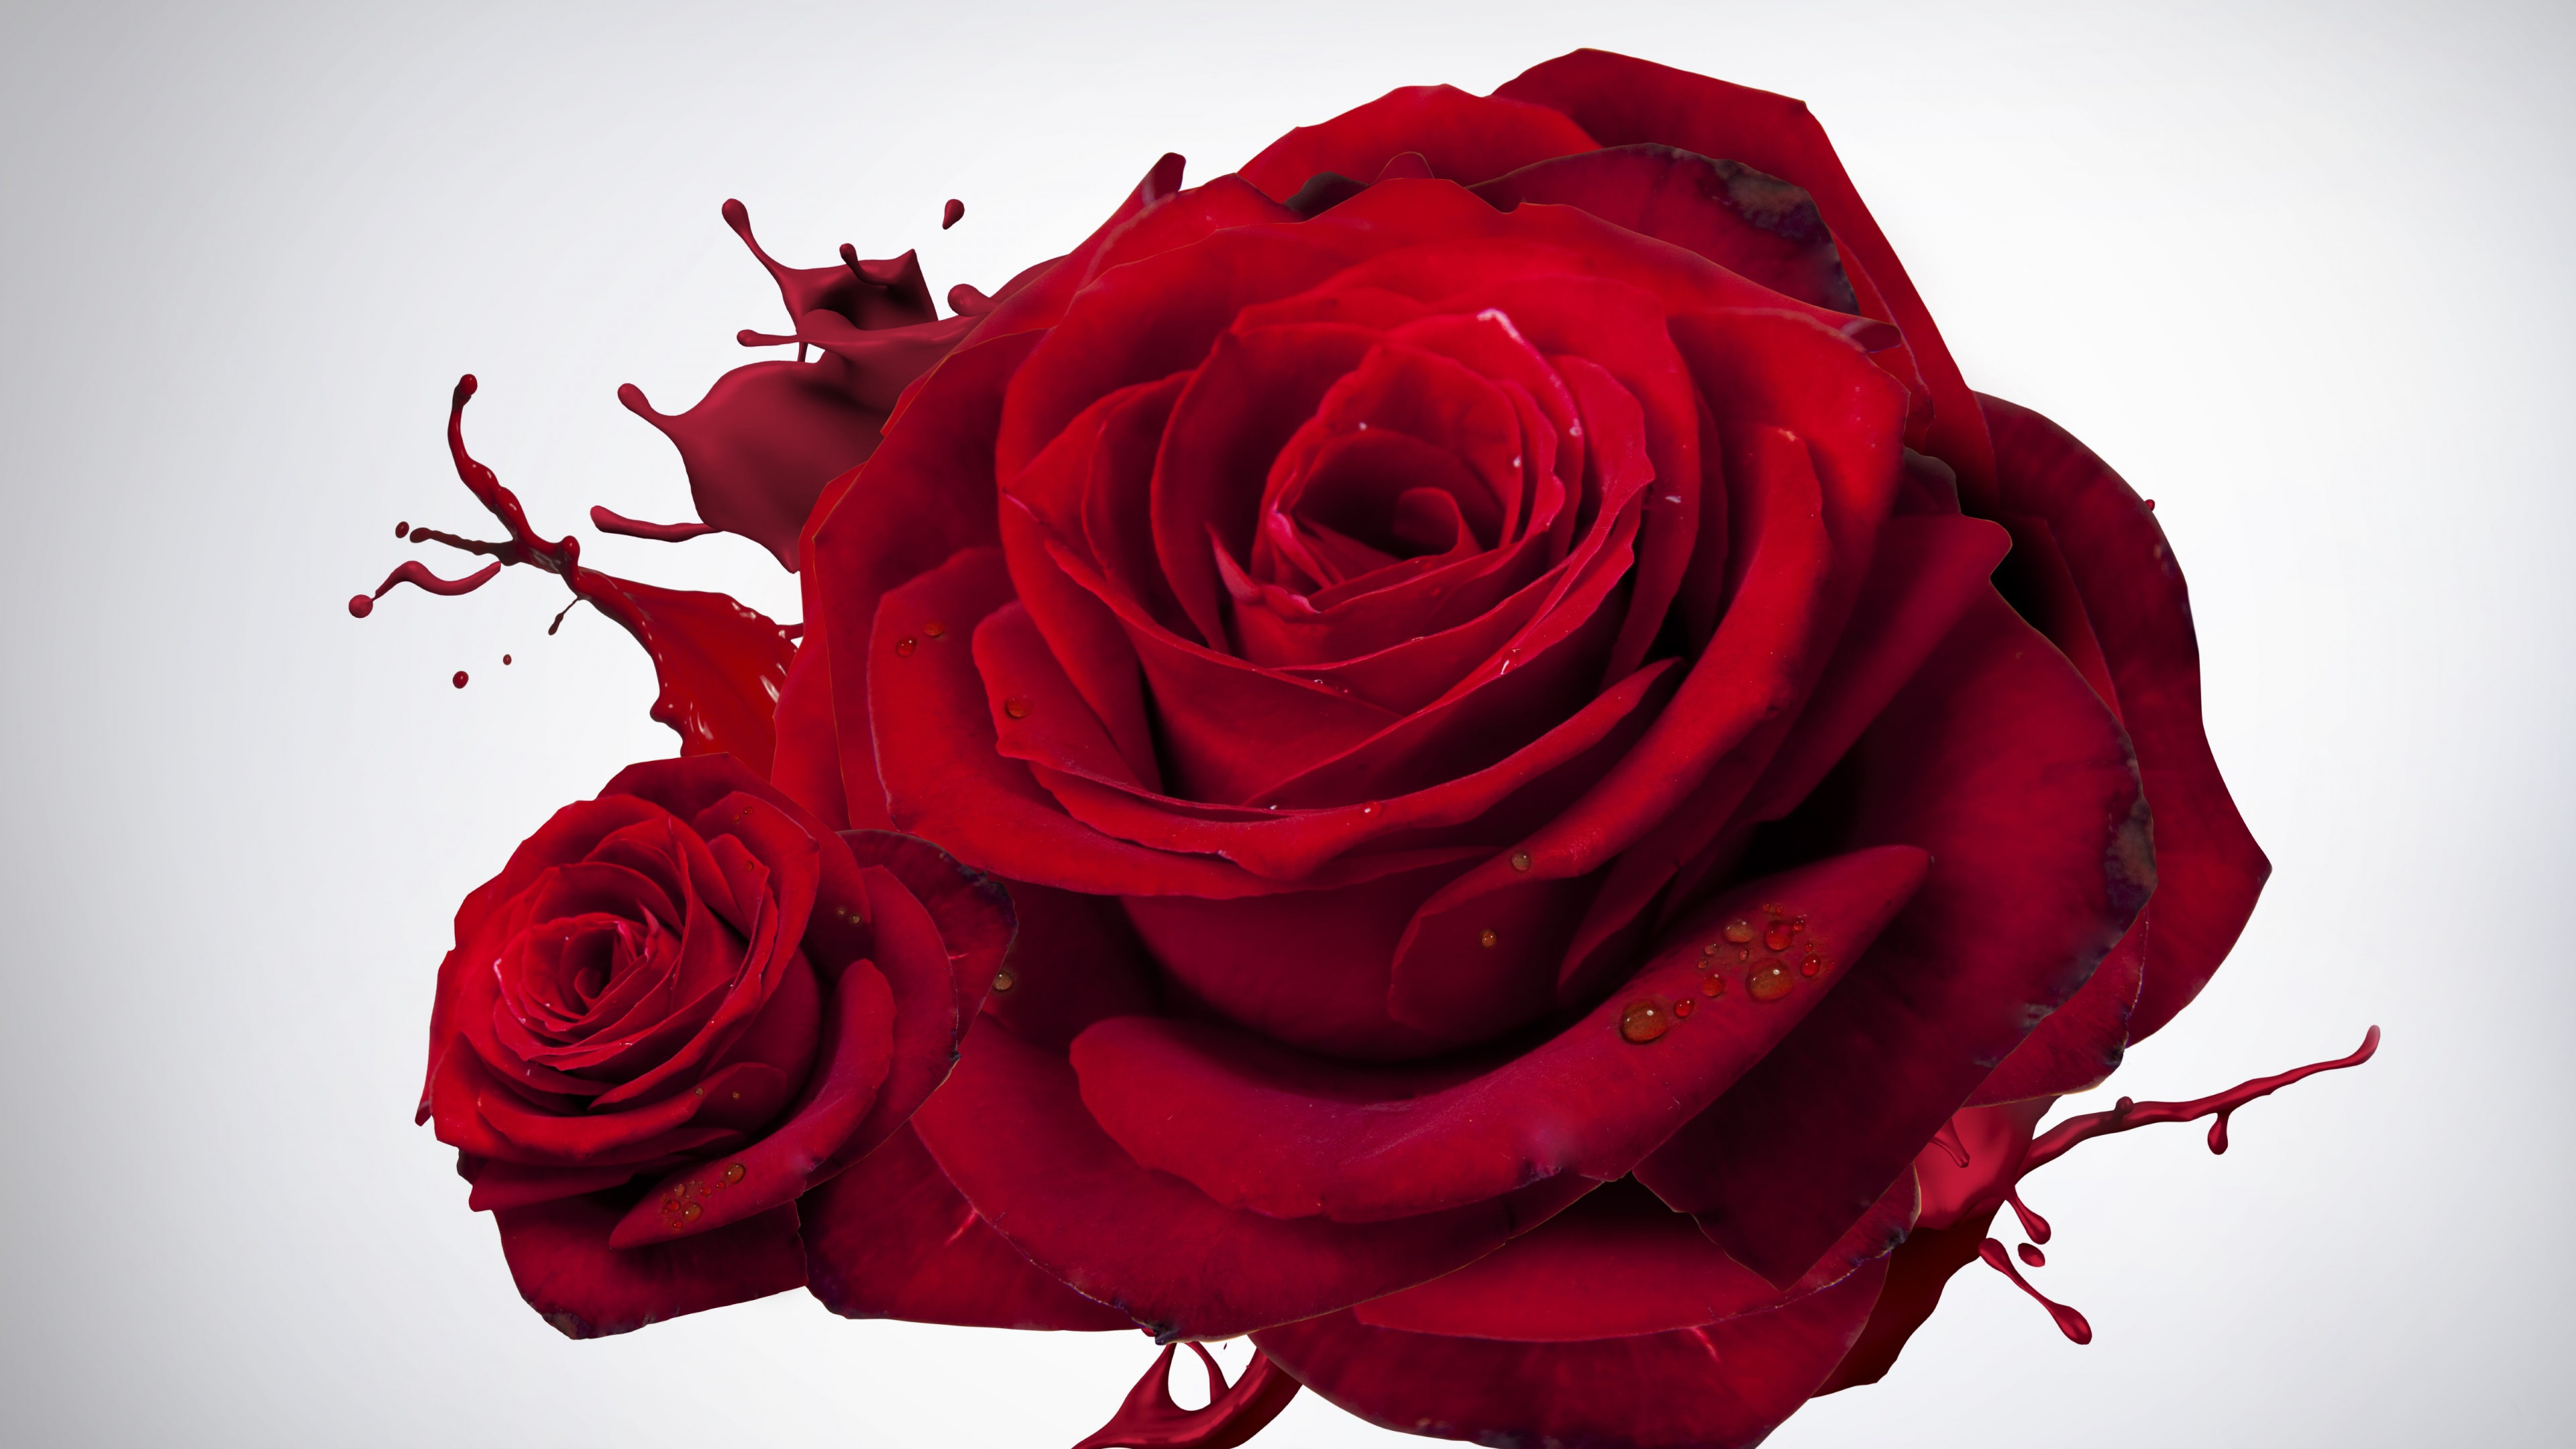 The most beautiful red roses | 3840x2160 wallpaper